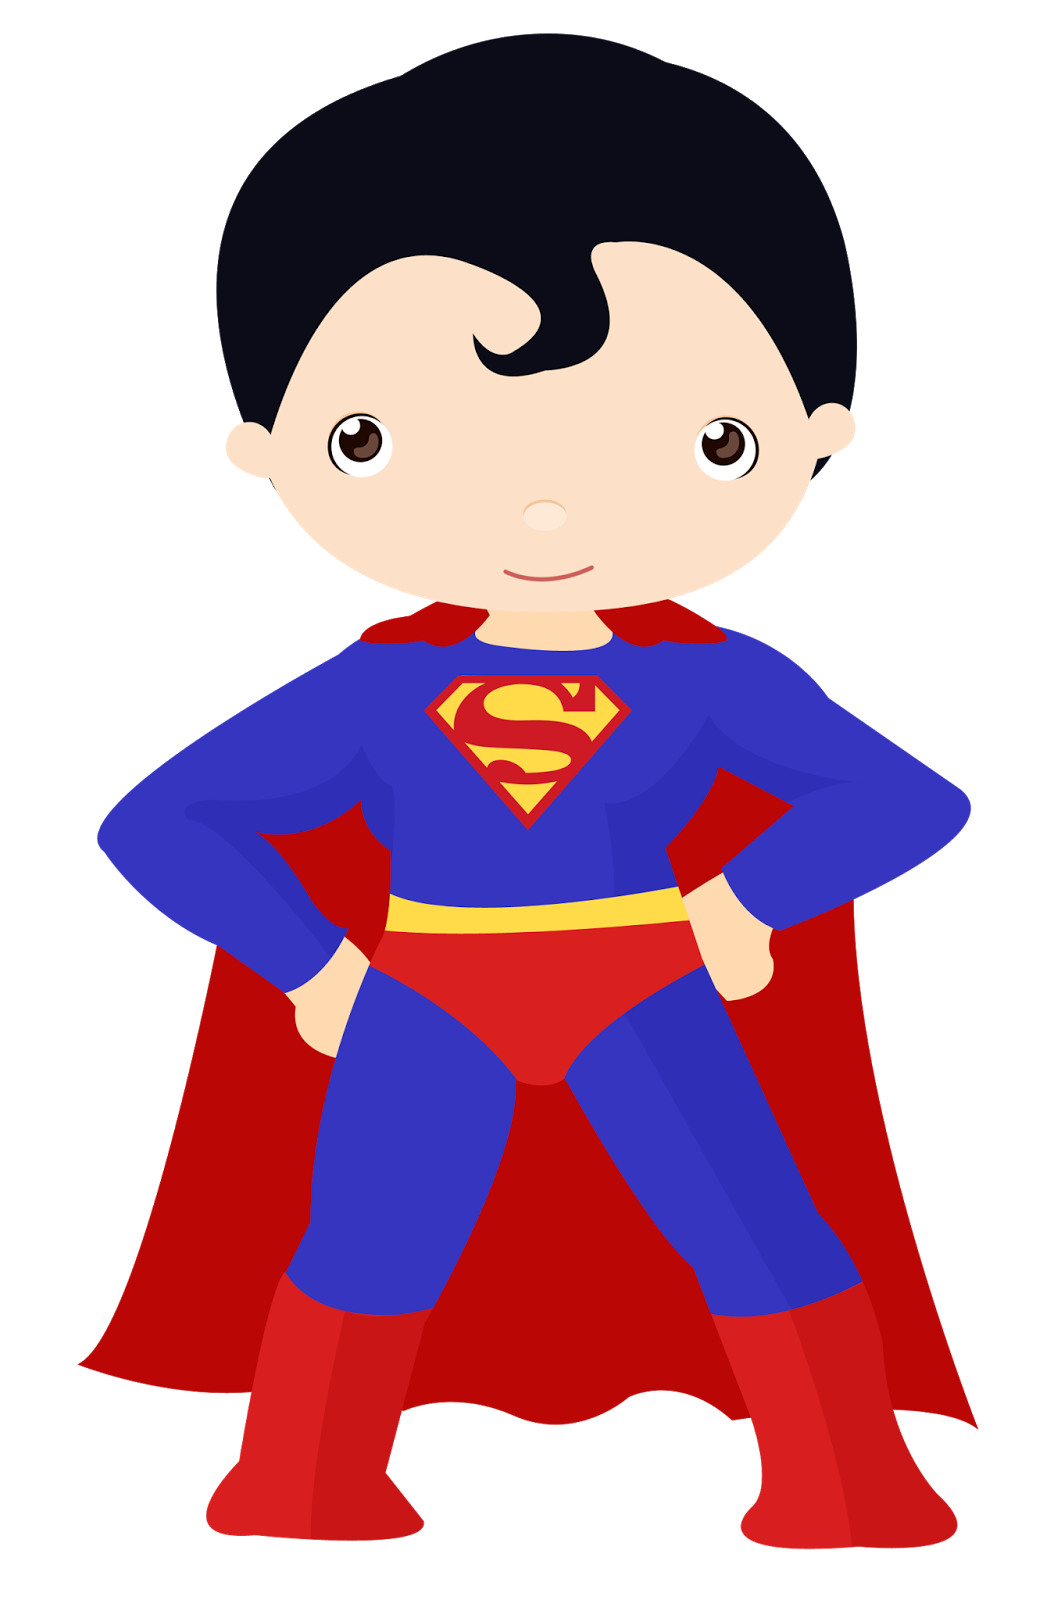 Baby Superheroes Clipart Oh My Fiesta For Geeks Superhero Kids Superhero Superhero Theme